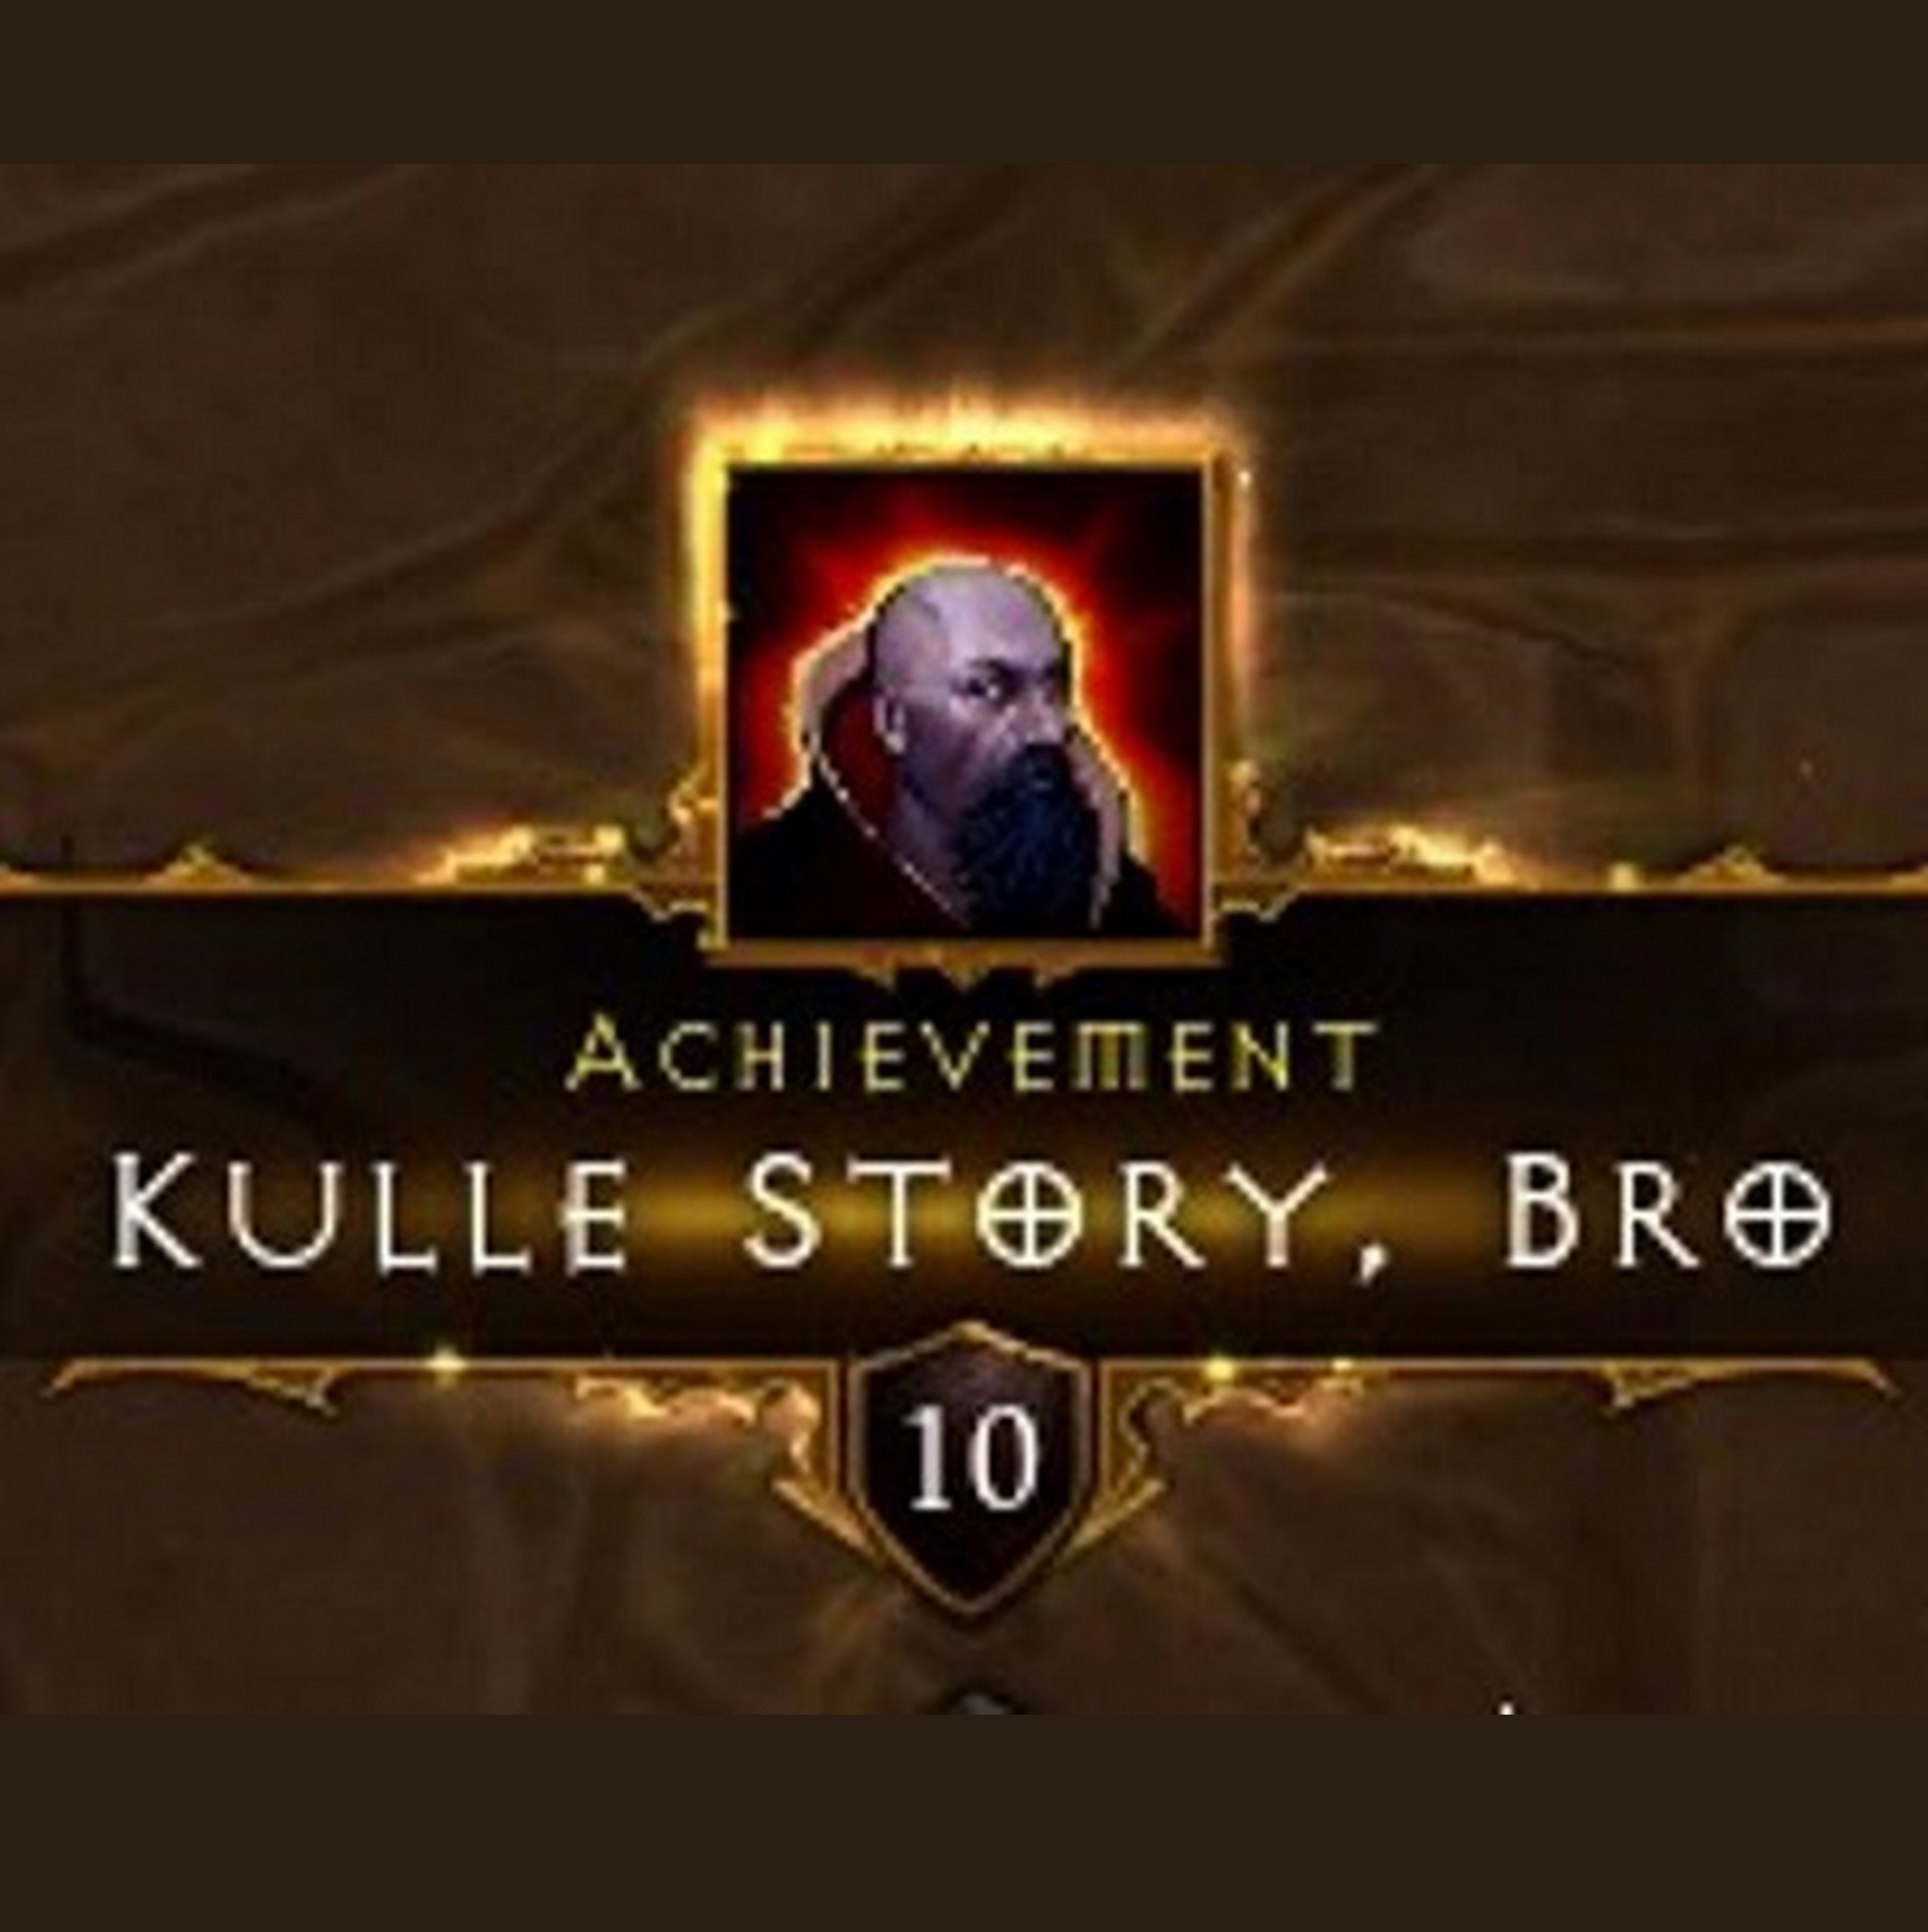 Kulle Story Bro - A Diablo 3 Podcast Episode 14